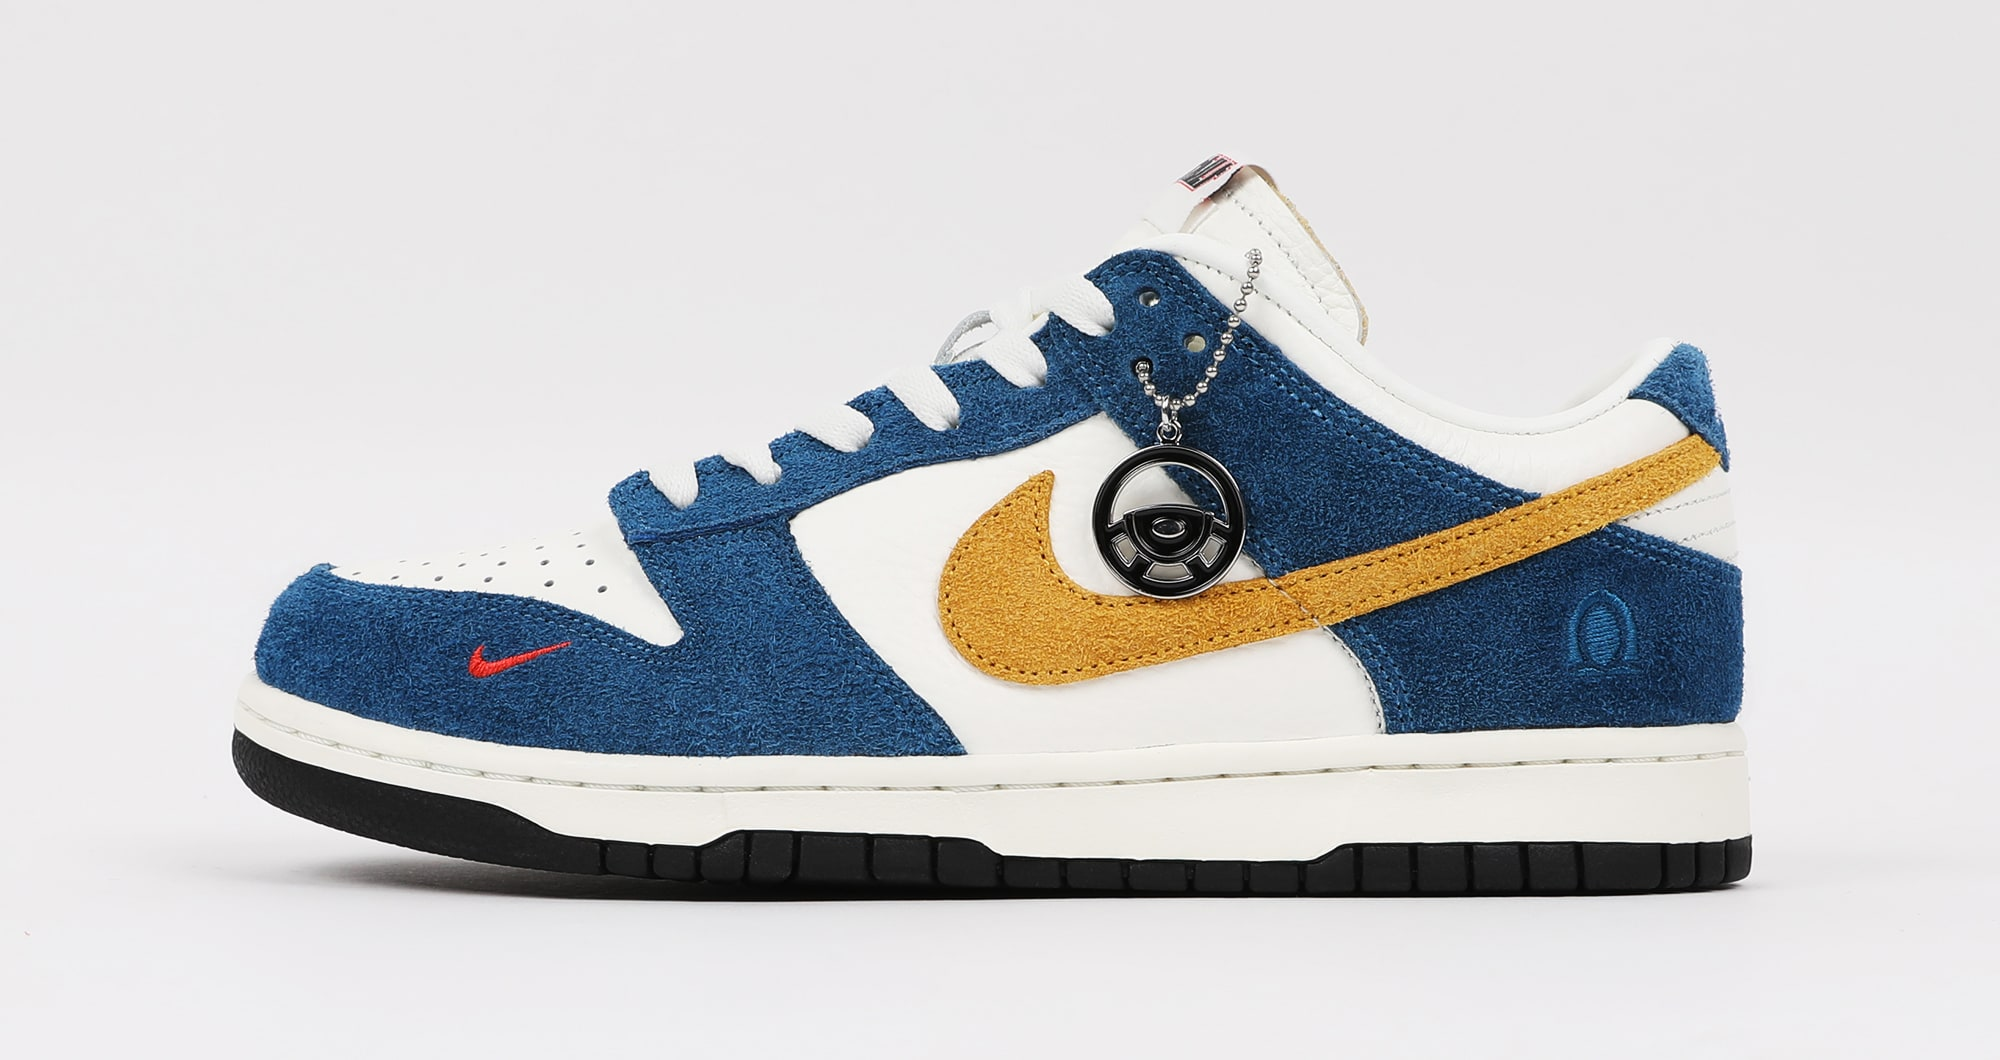 Kasina x Nike Dunk Low 'Industrial Blue' Lateral